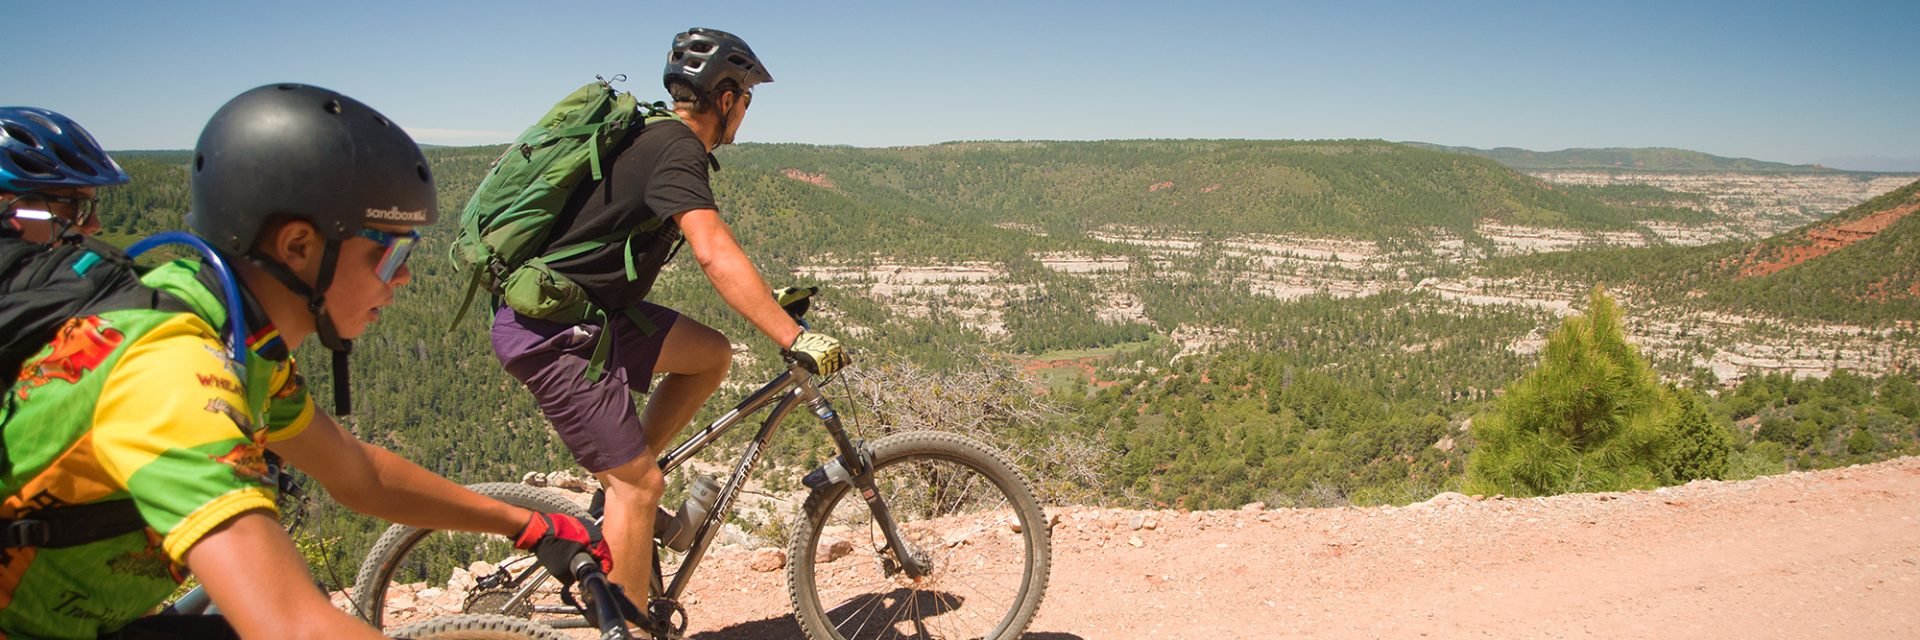 After climbing out of Big Notch, Bears Ears riders are rewarded with a view into Dark Canyon